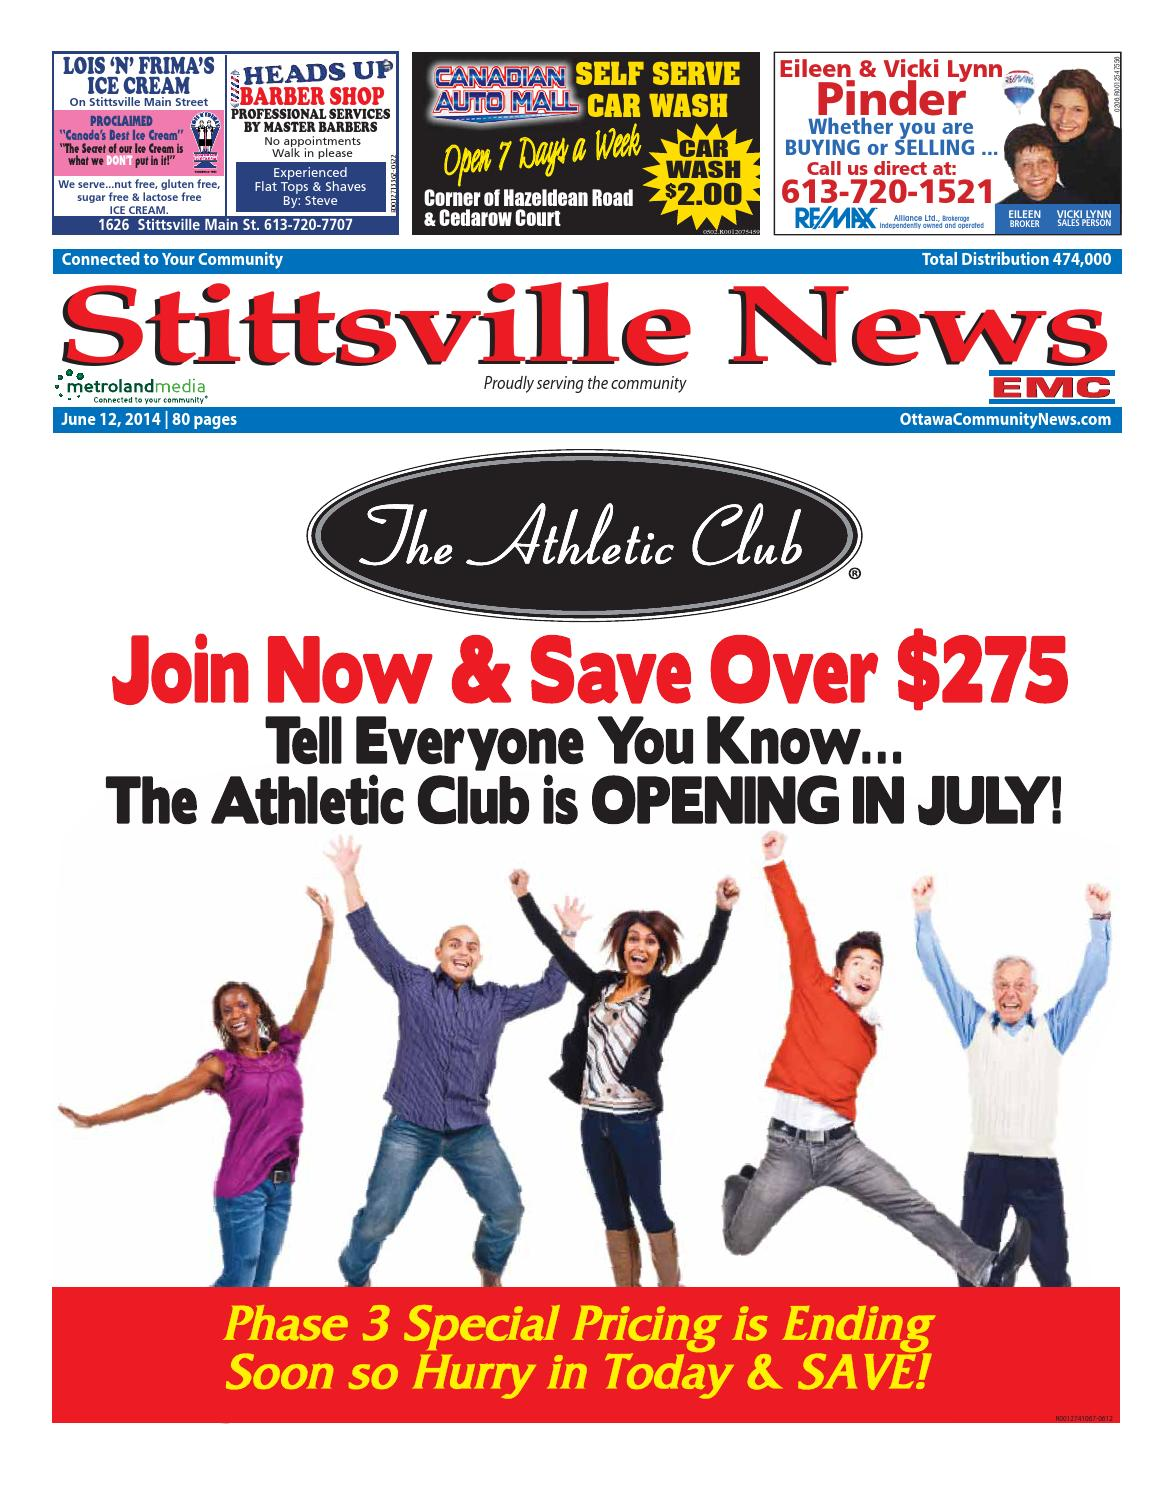 Stittsville061214 by Metroland East - Stittsville News - issuu 5db4cf89c